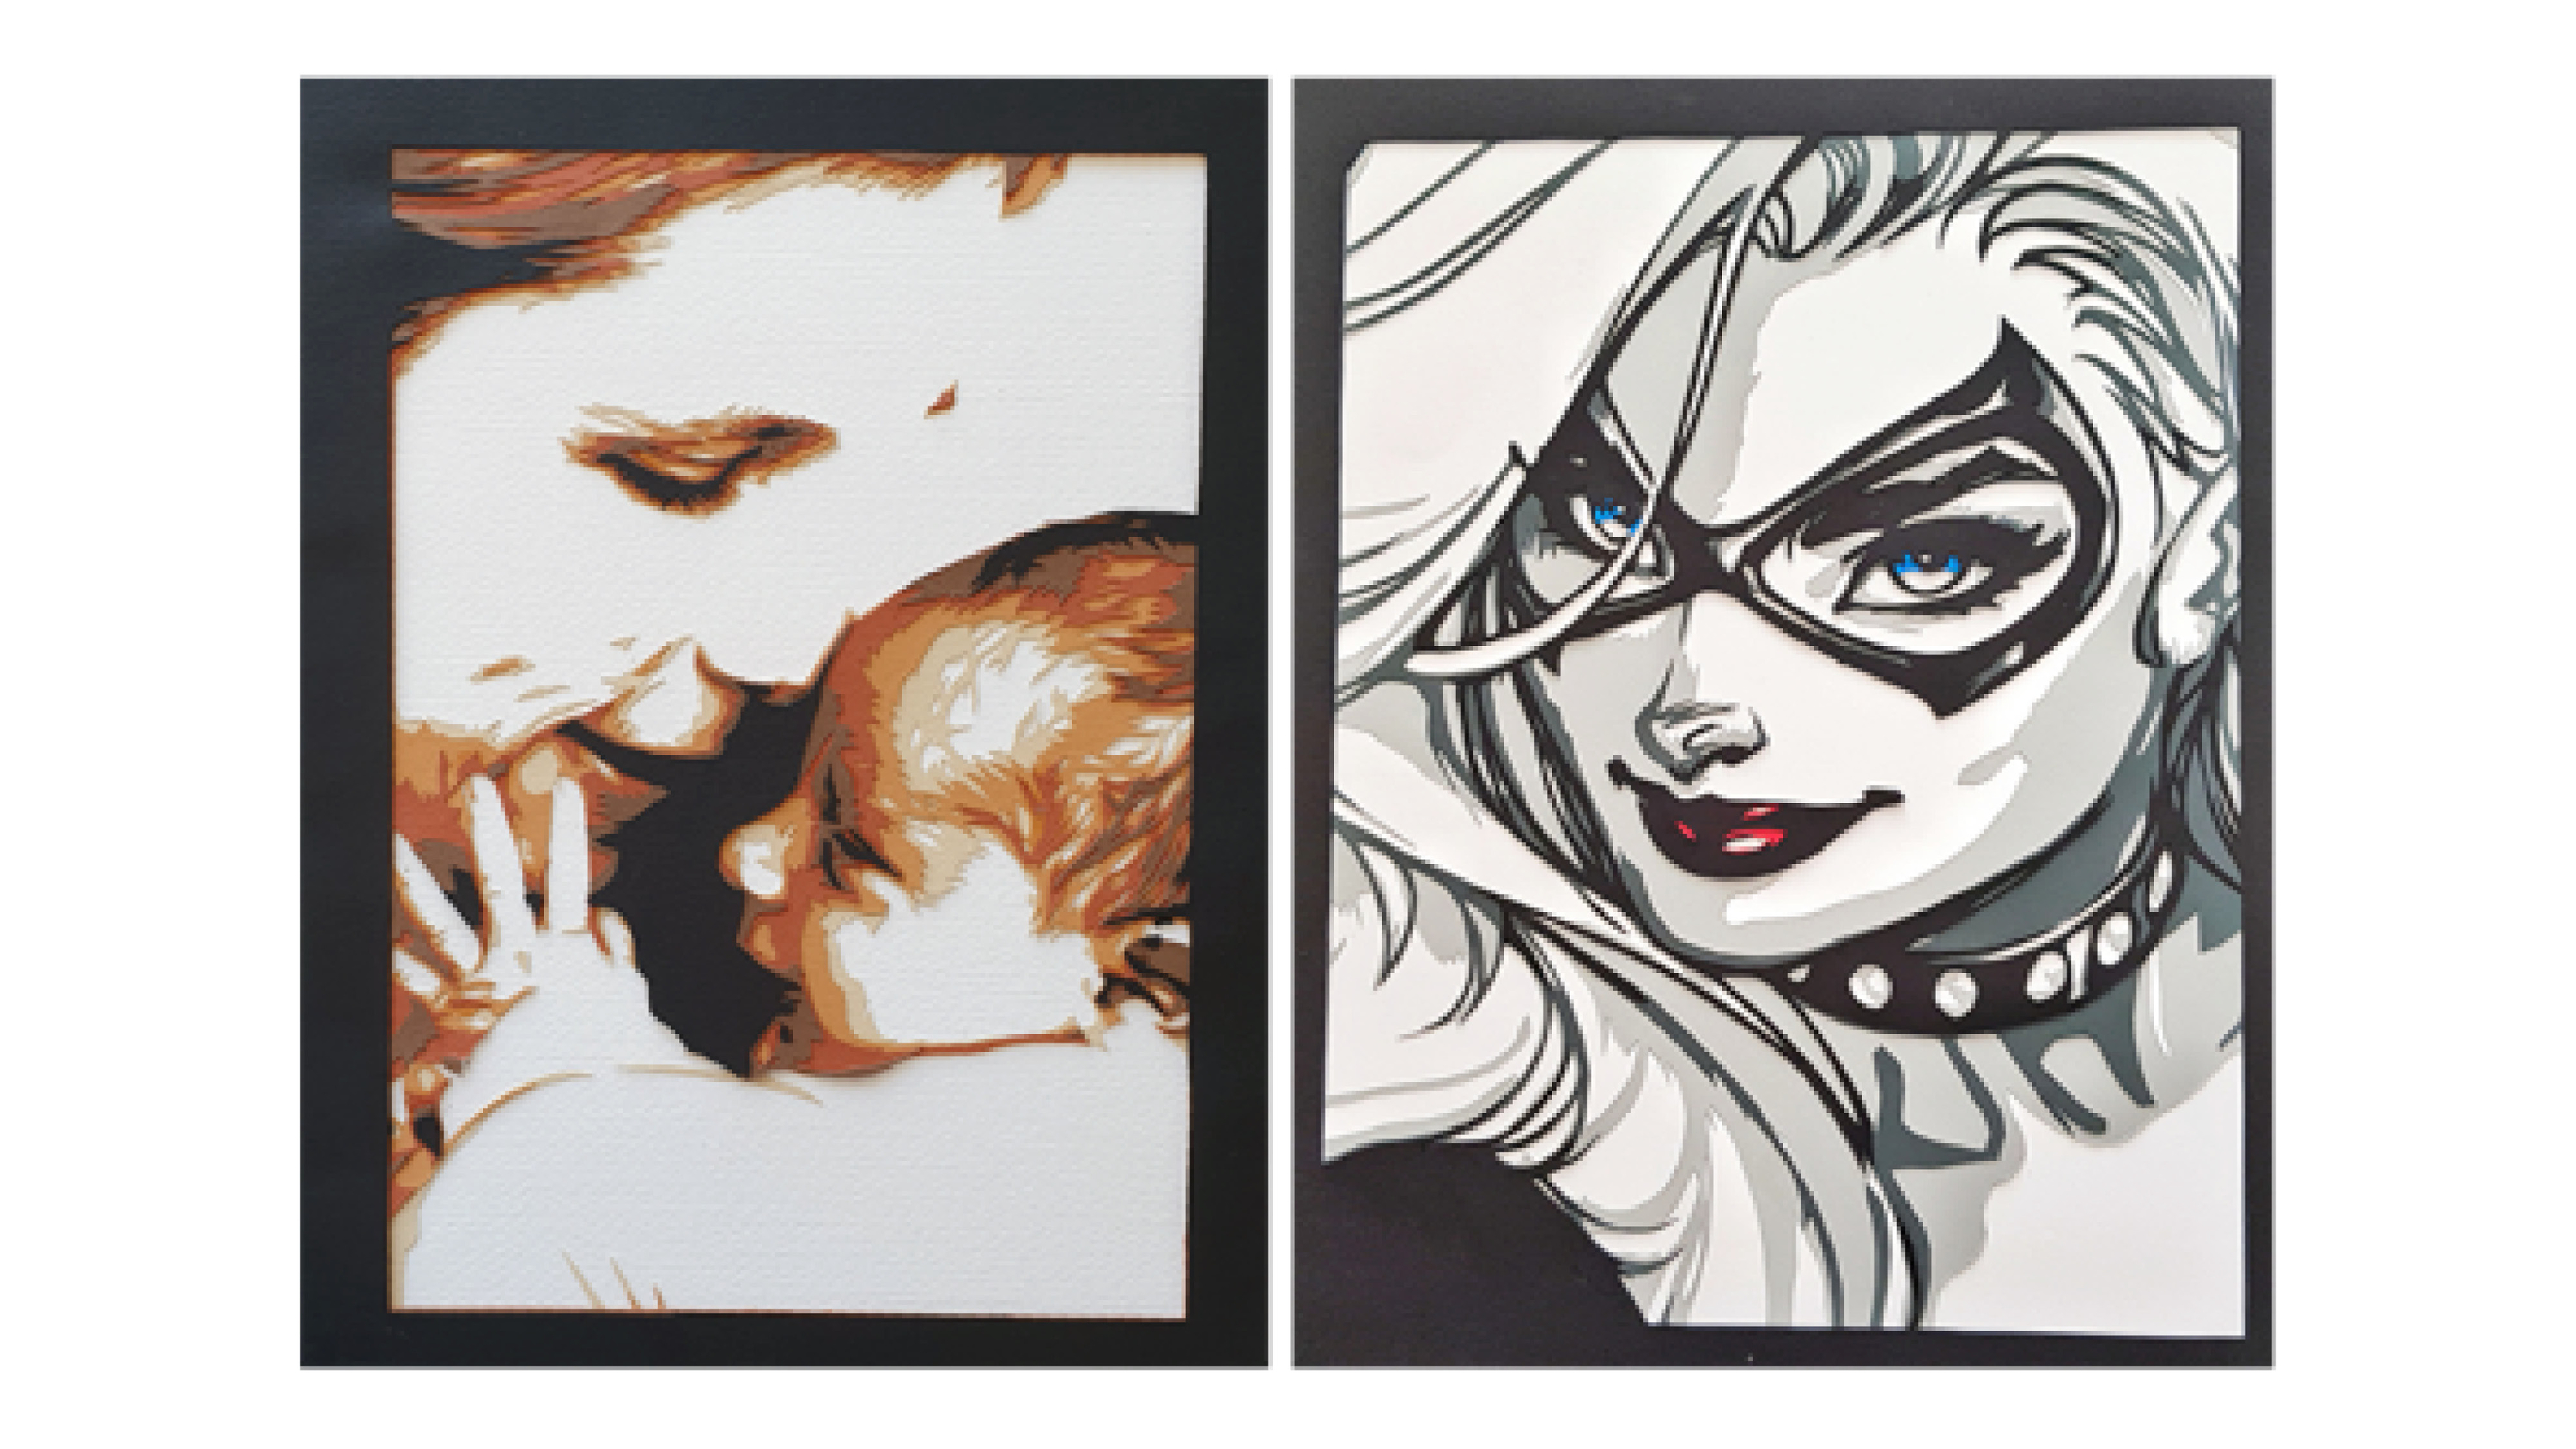 Bespoke Artwork By Arkham Creative To Be Auctioned At Abu Dhabi Dream Ball 2020